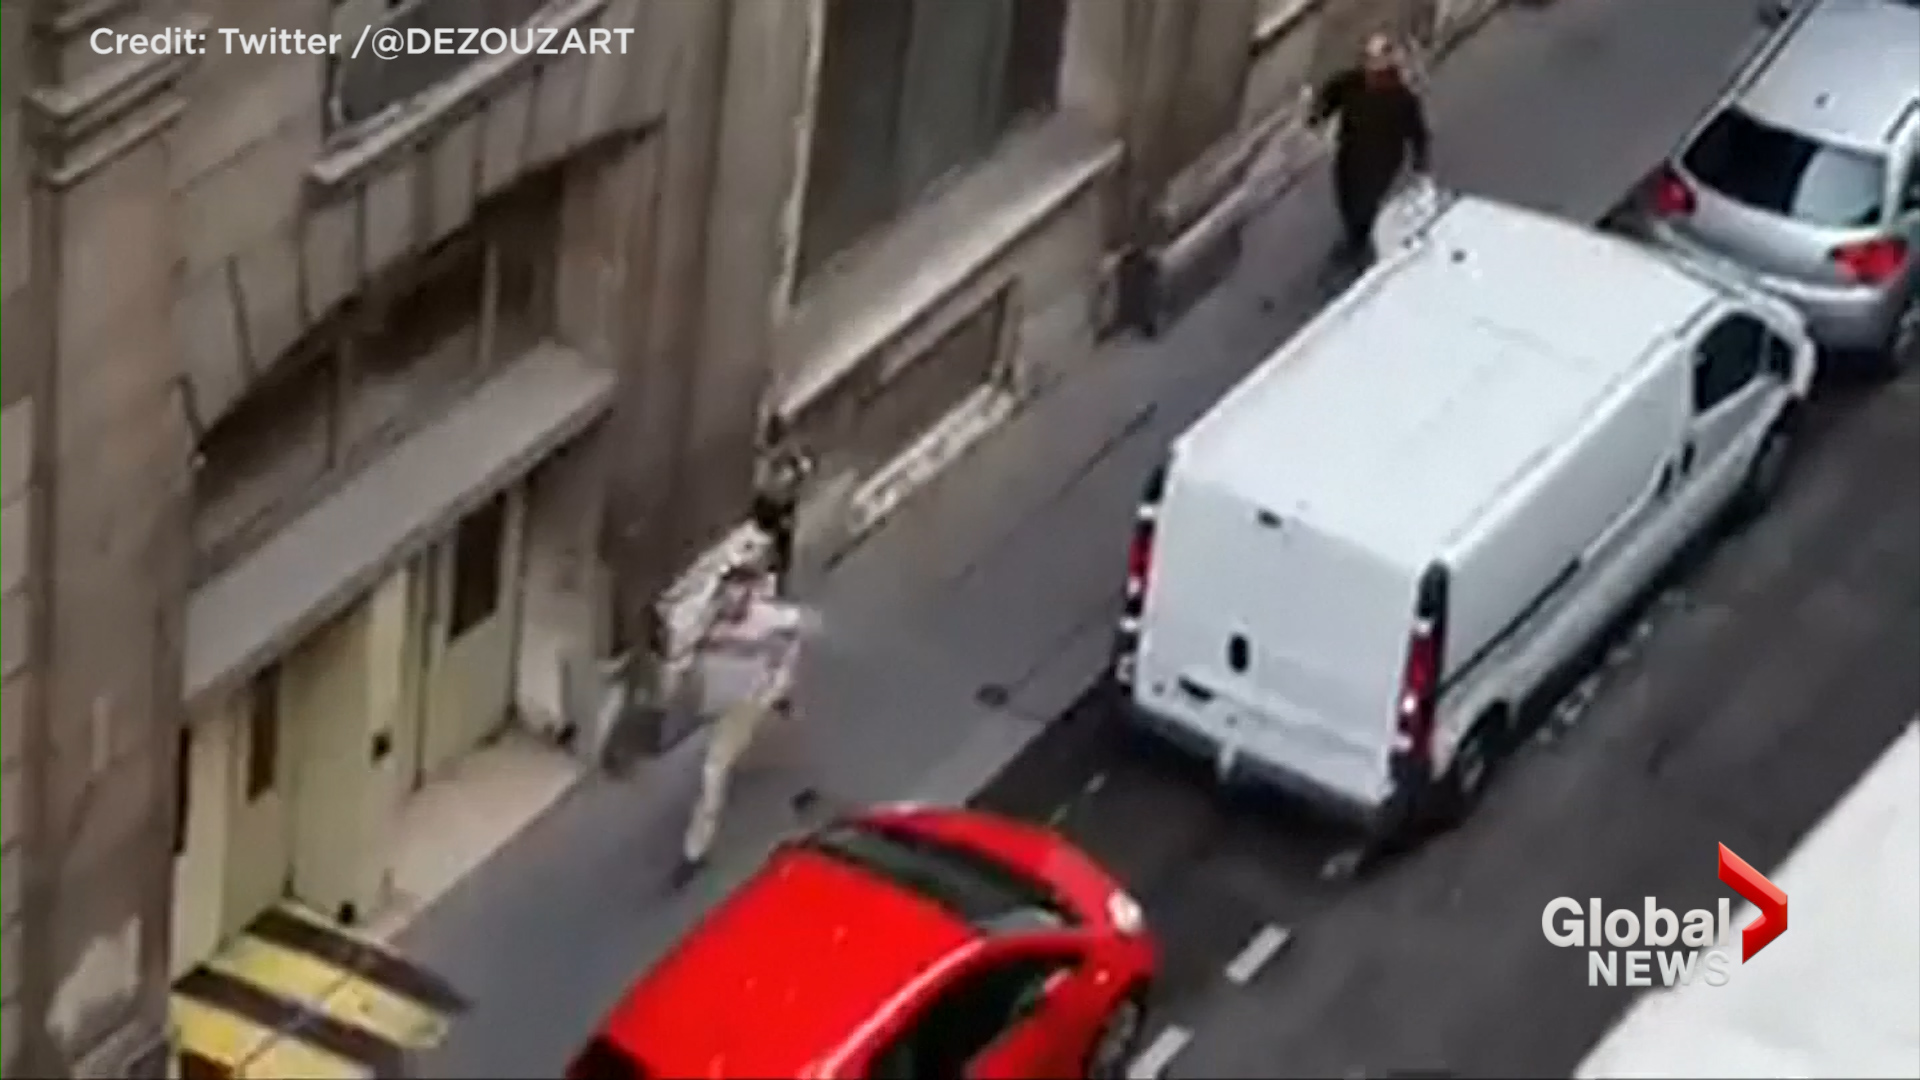 Attacker shot dead after lethal knife rampage in the heart of Paris